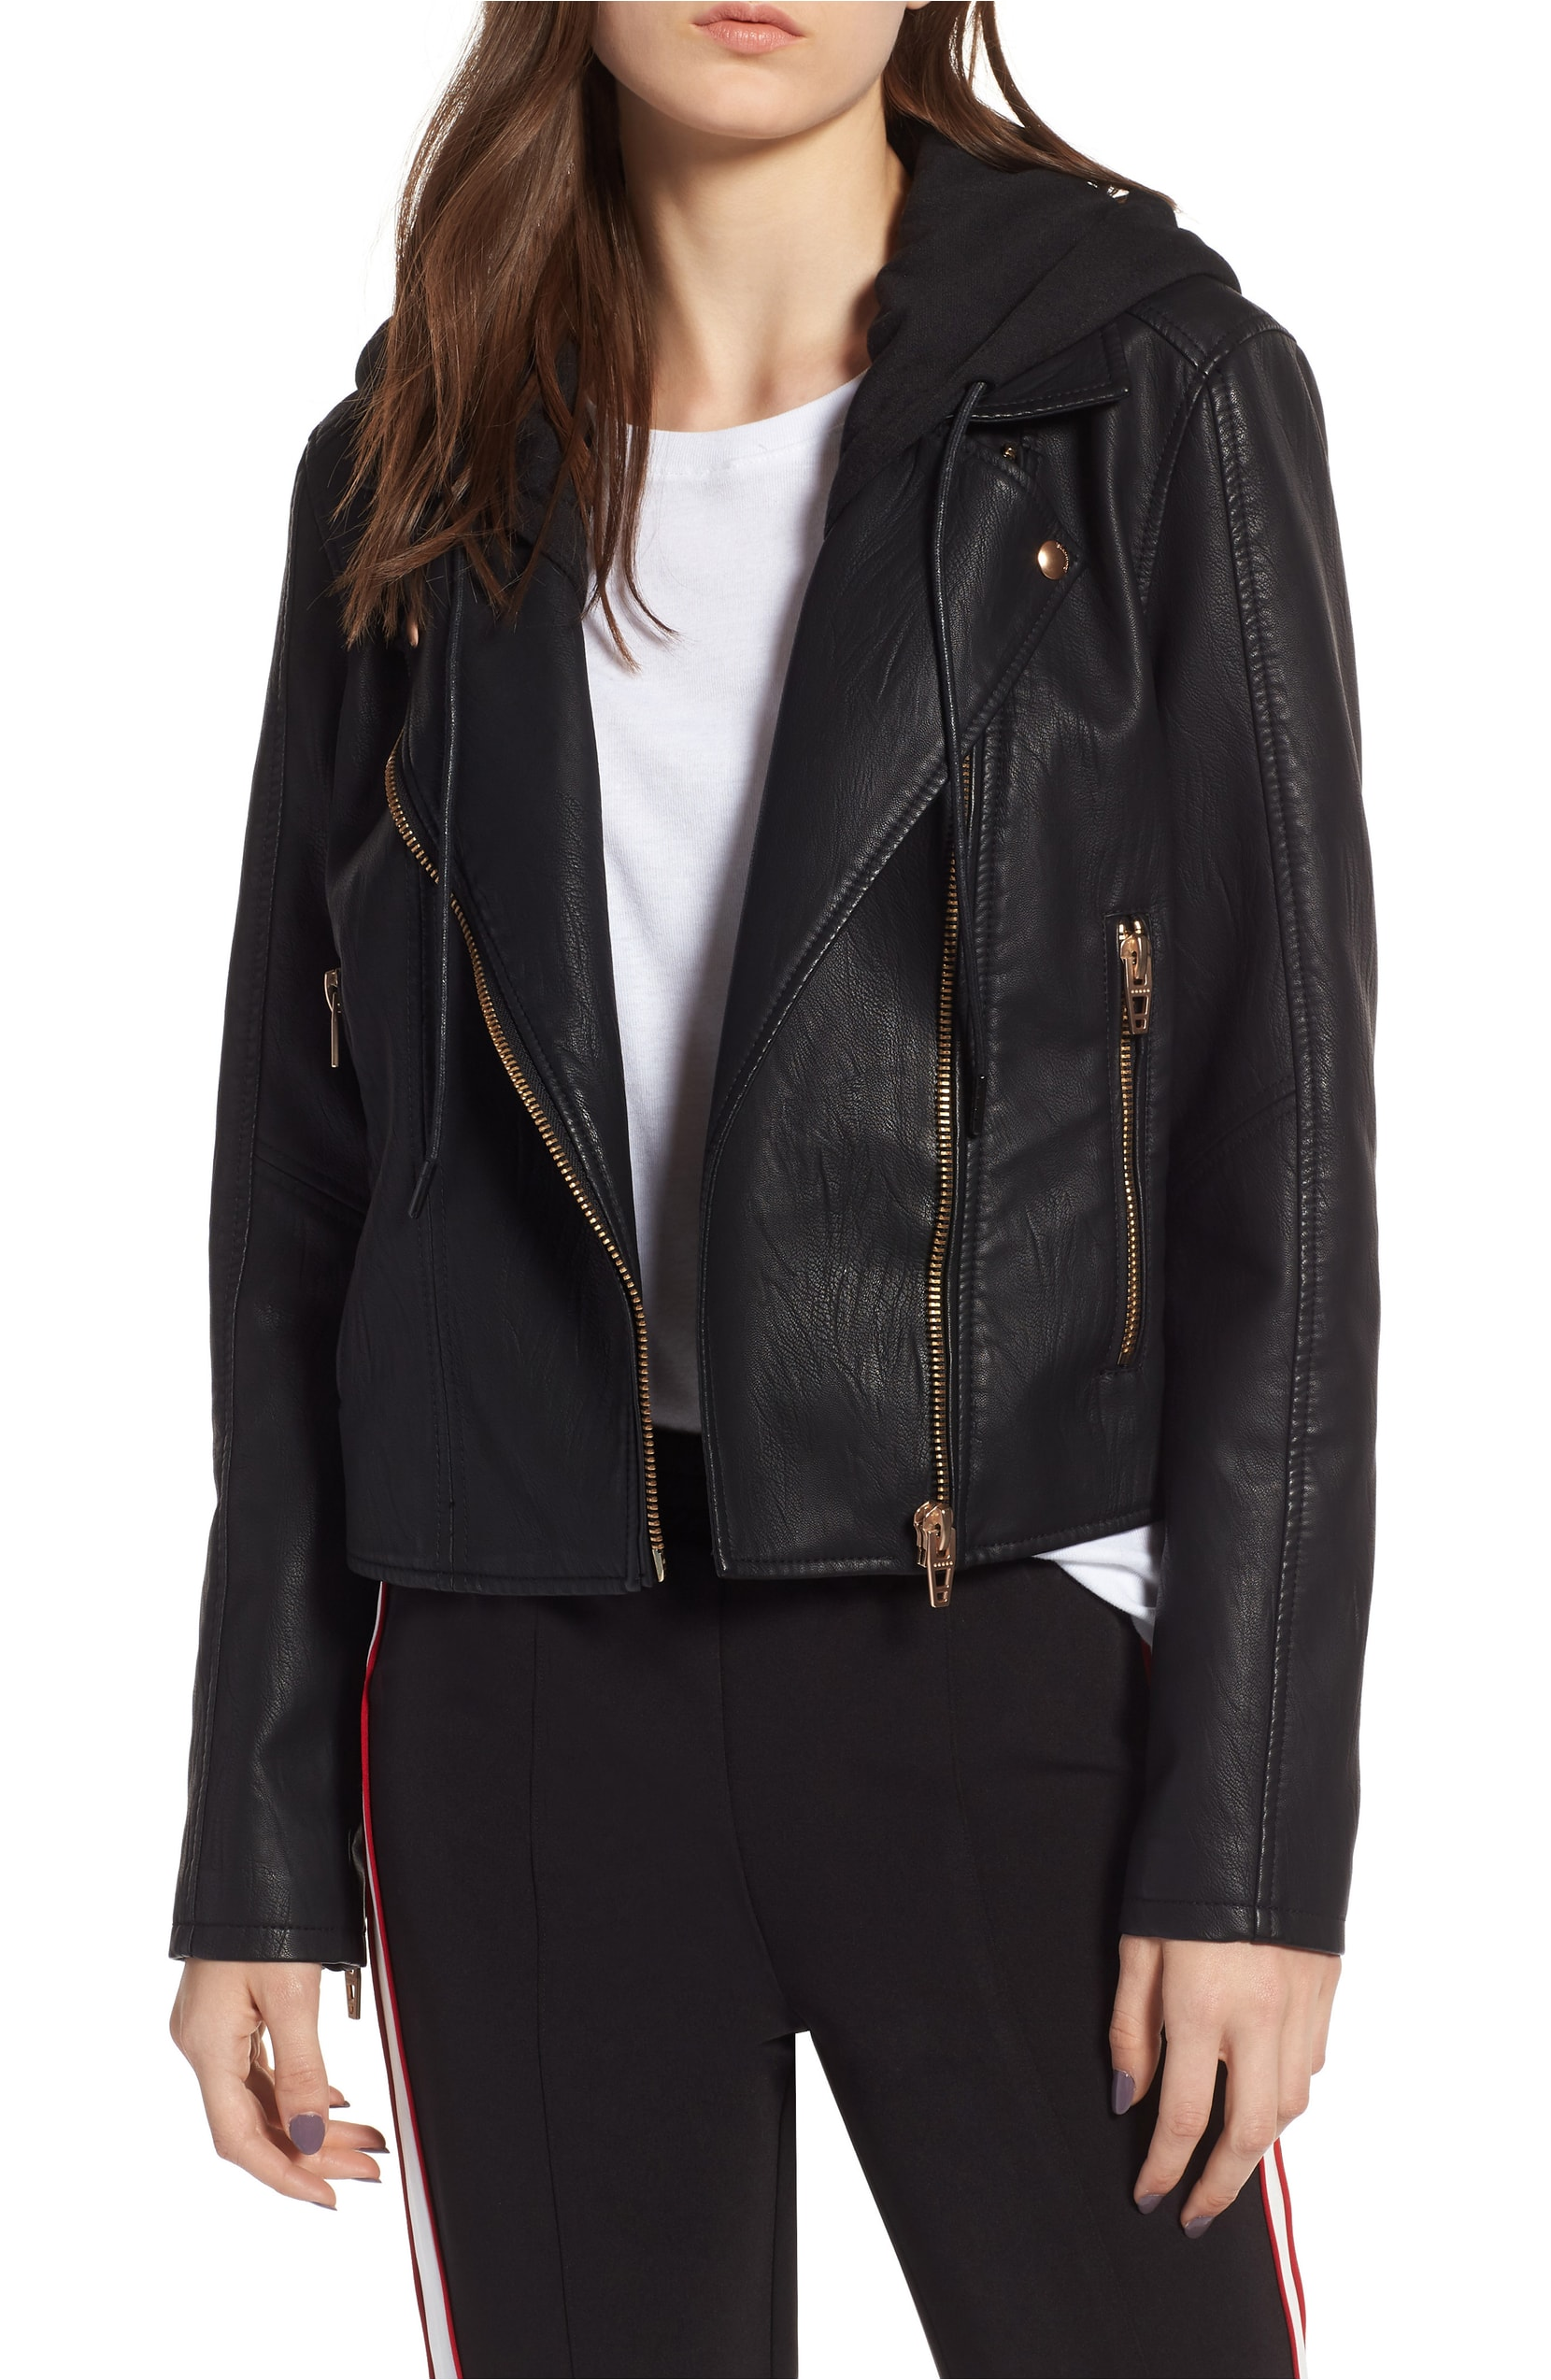 Meant to Be Moto Jacket with Removable Hood. Sale: $64.90 / After Sale: $98.00. (Image: Nordstrom){ }